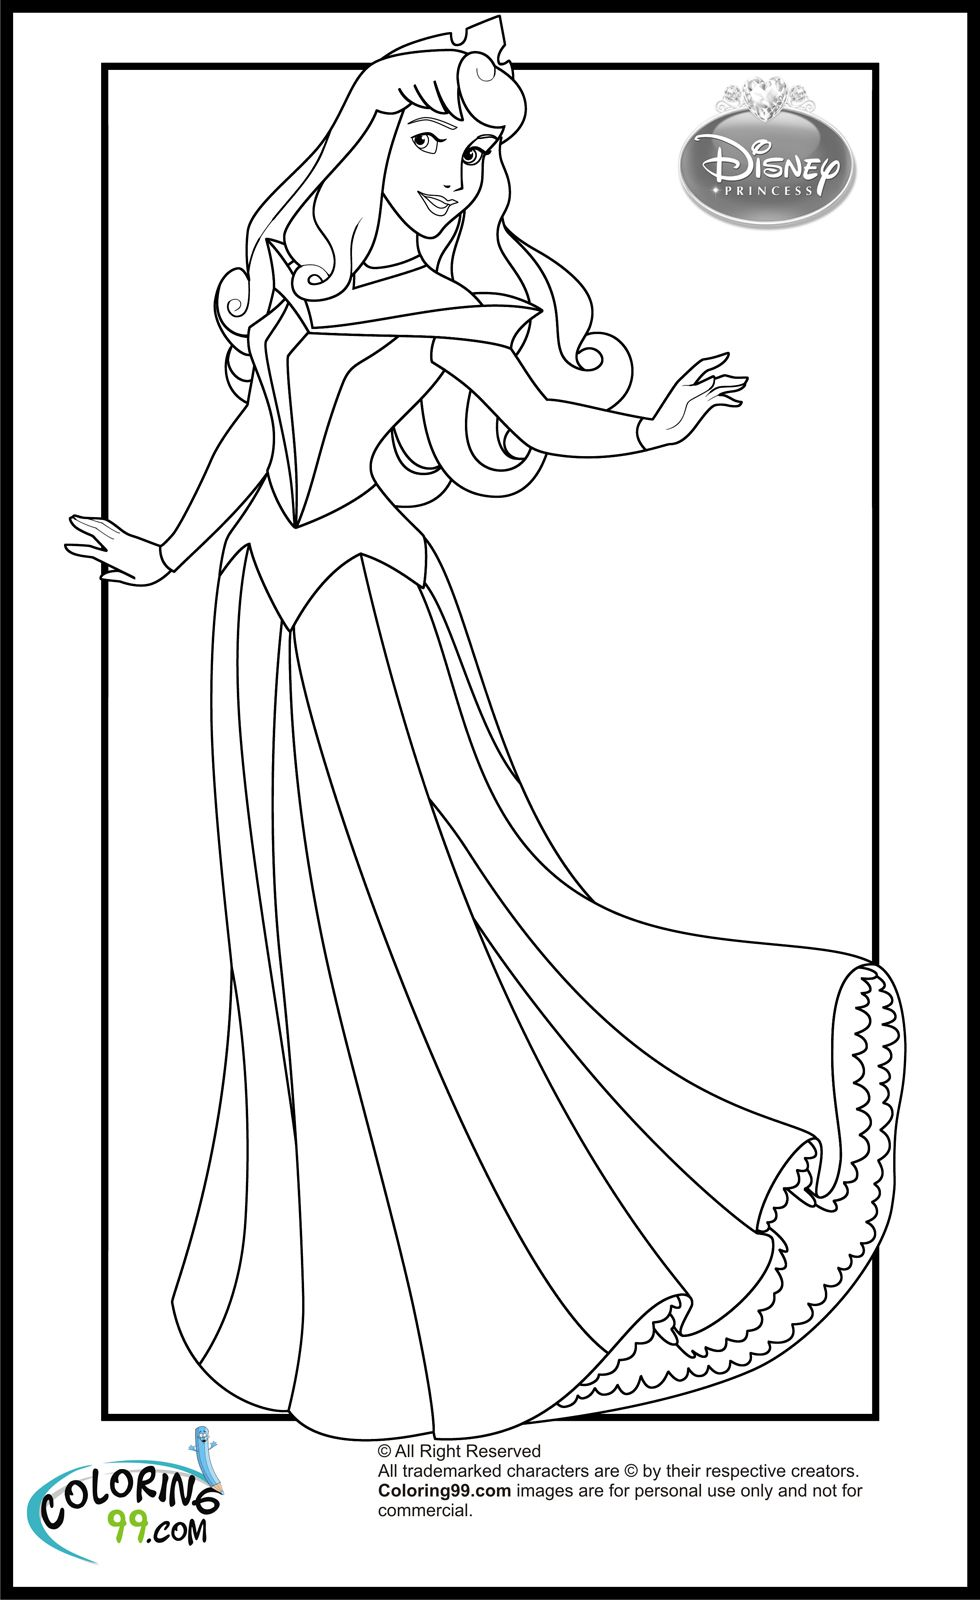 Disney Princess Aurora Coloring Pages Disney Princess Colors